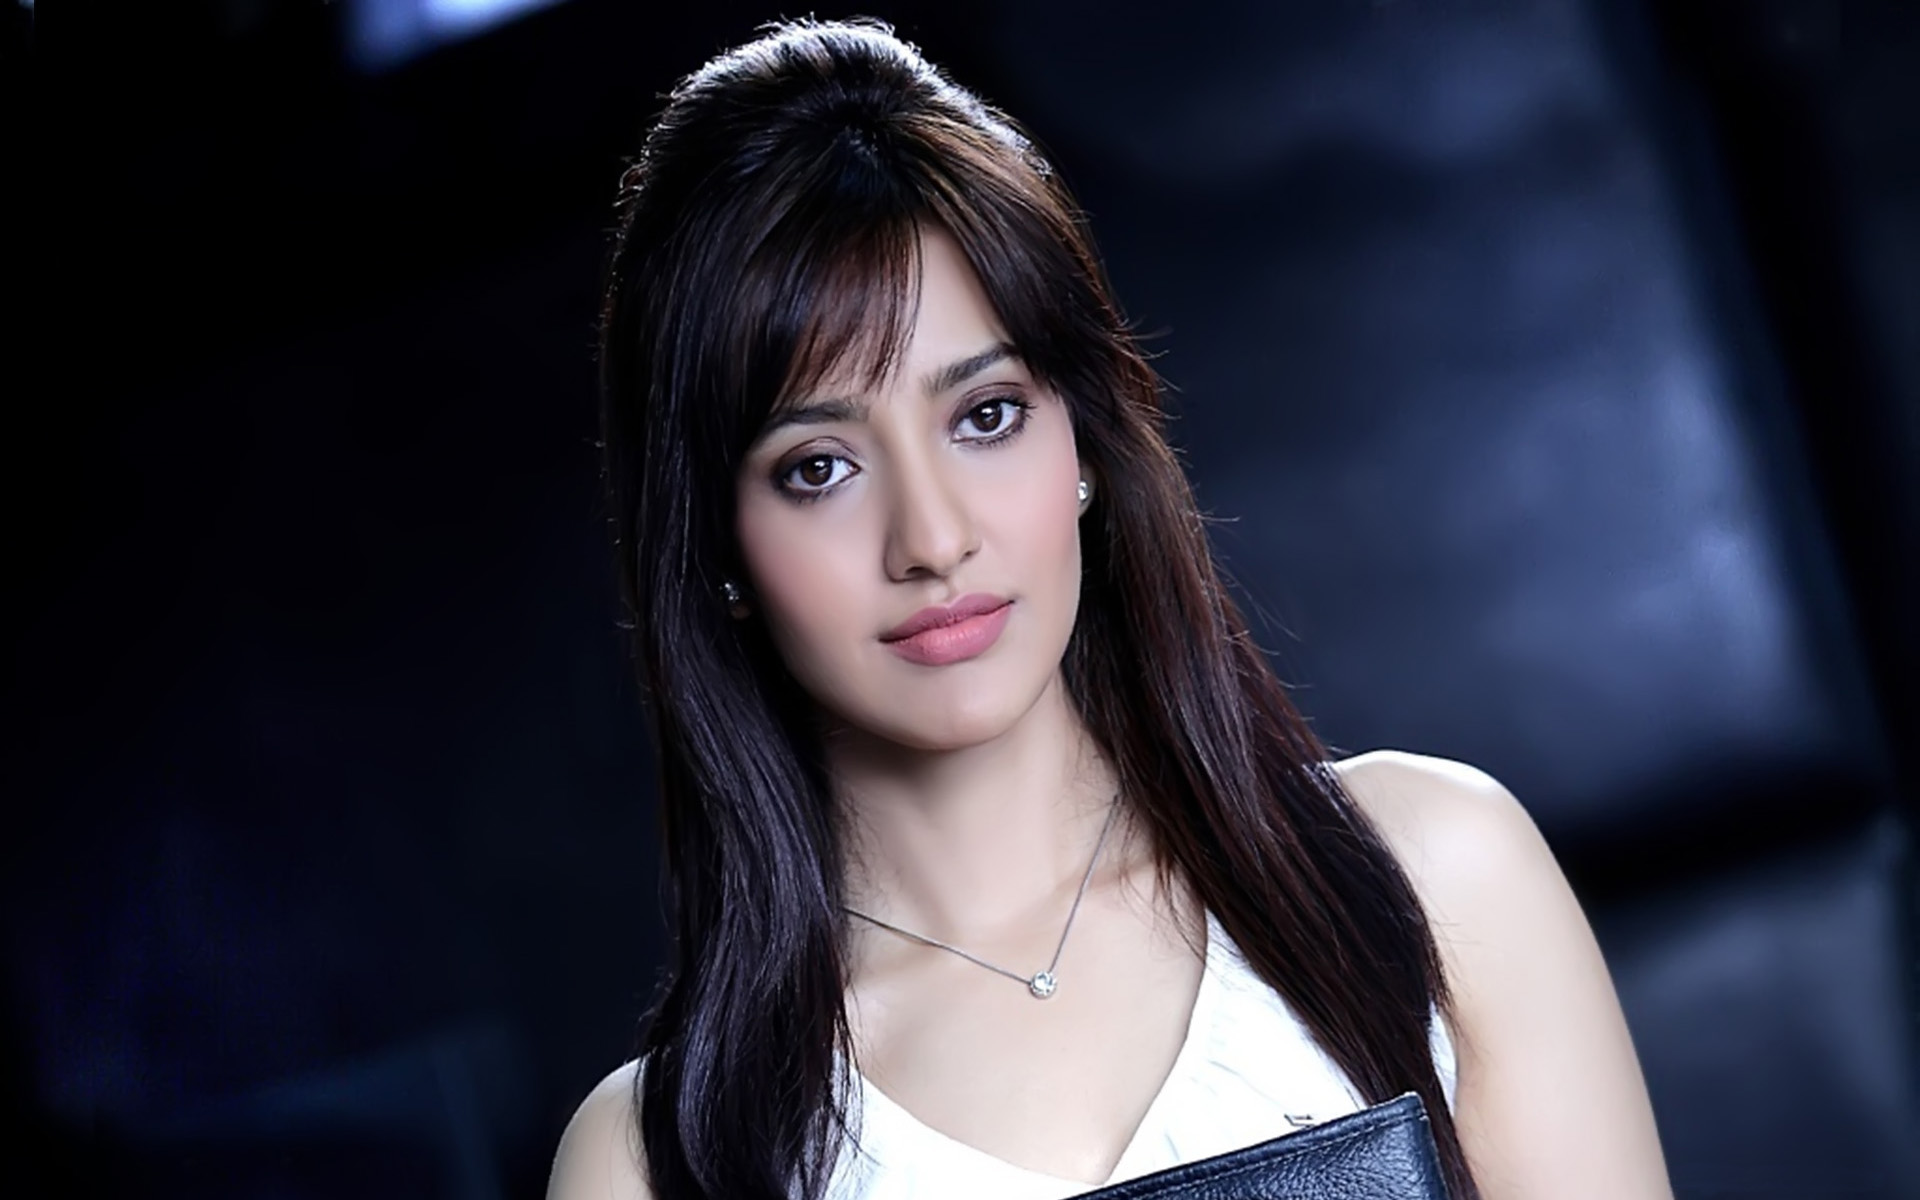 Cute Neha Sharma HD wallpaper for download